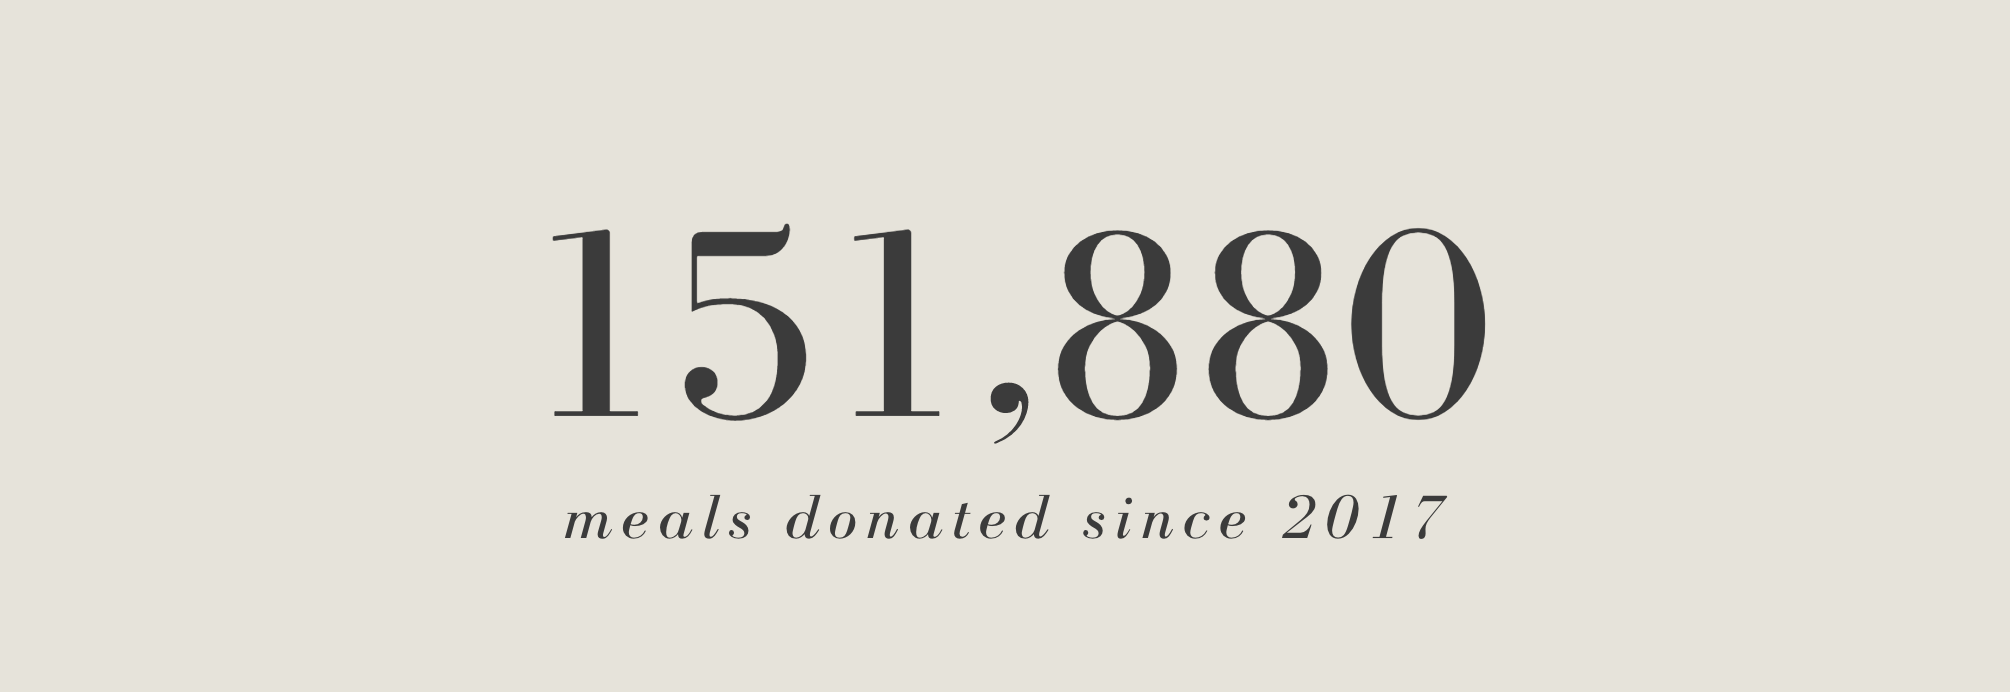 151,880 meals donated by Scoria World since 2017